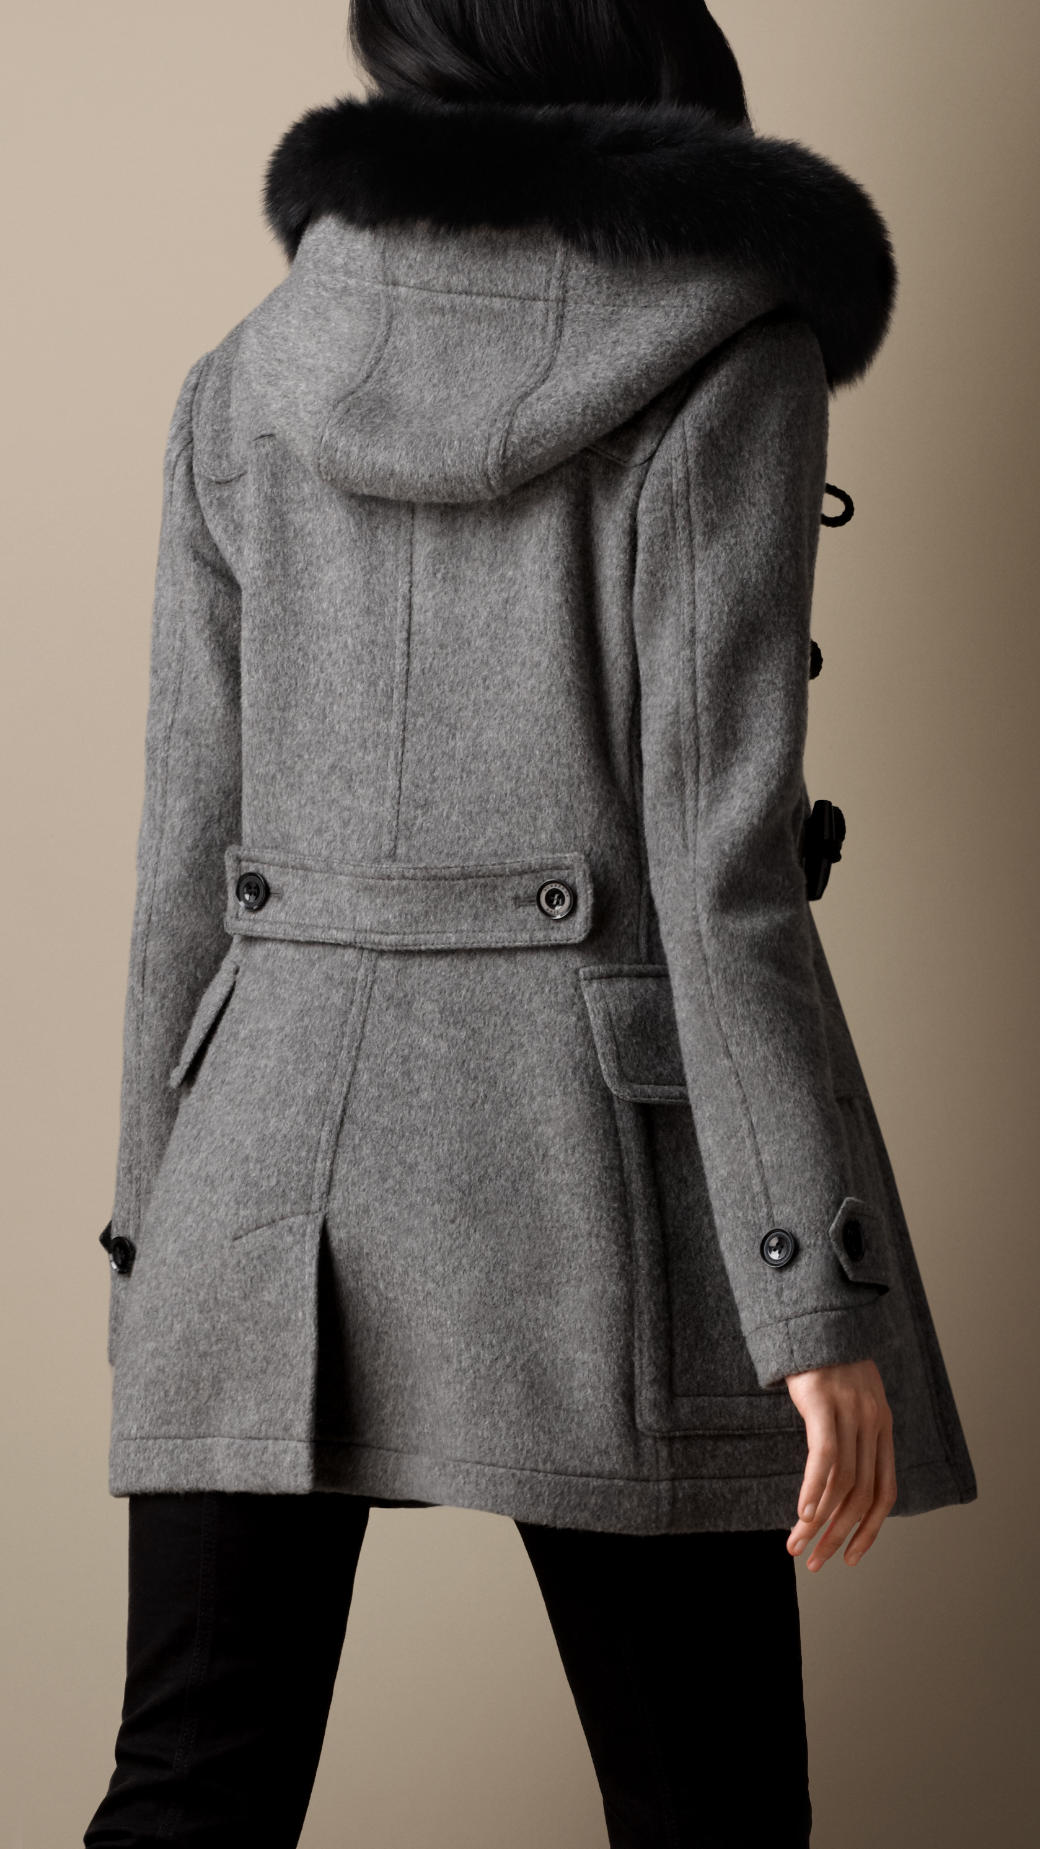 Burberry Detachable Fur Trim Fitted Duffle Coat in Gray | Lyst